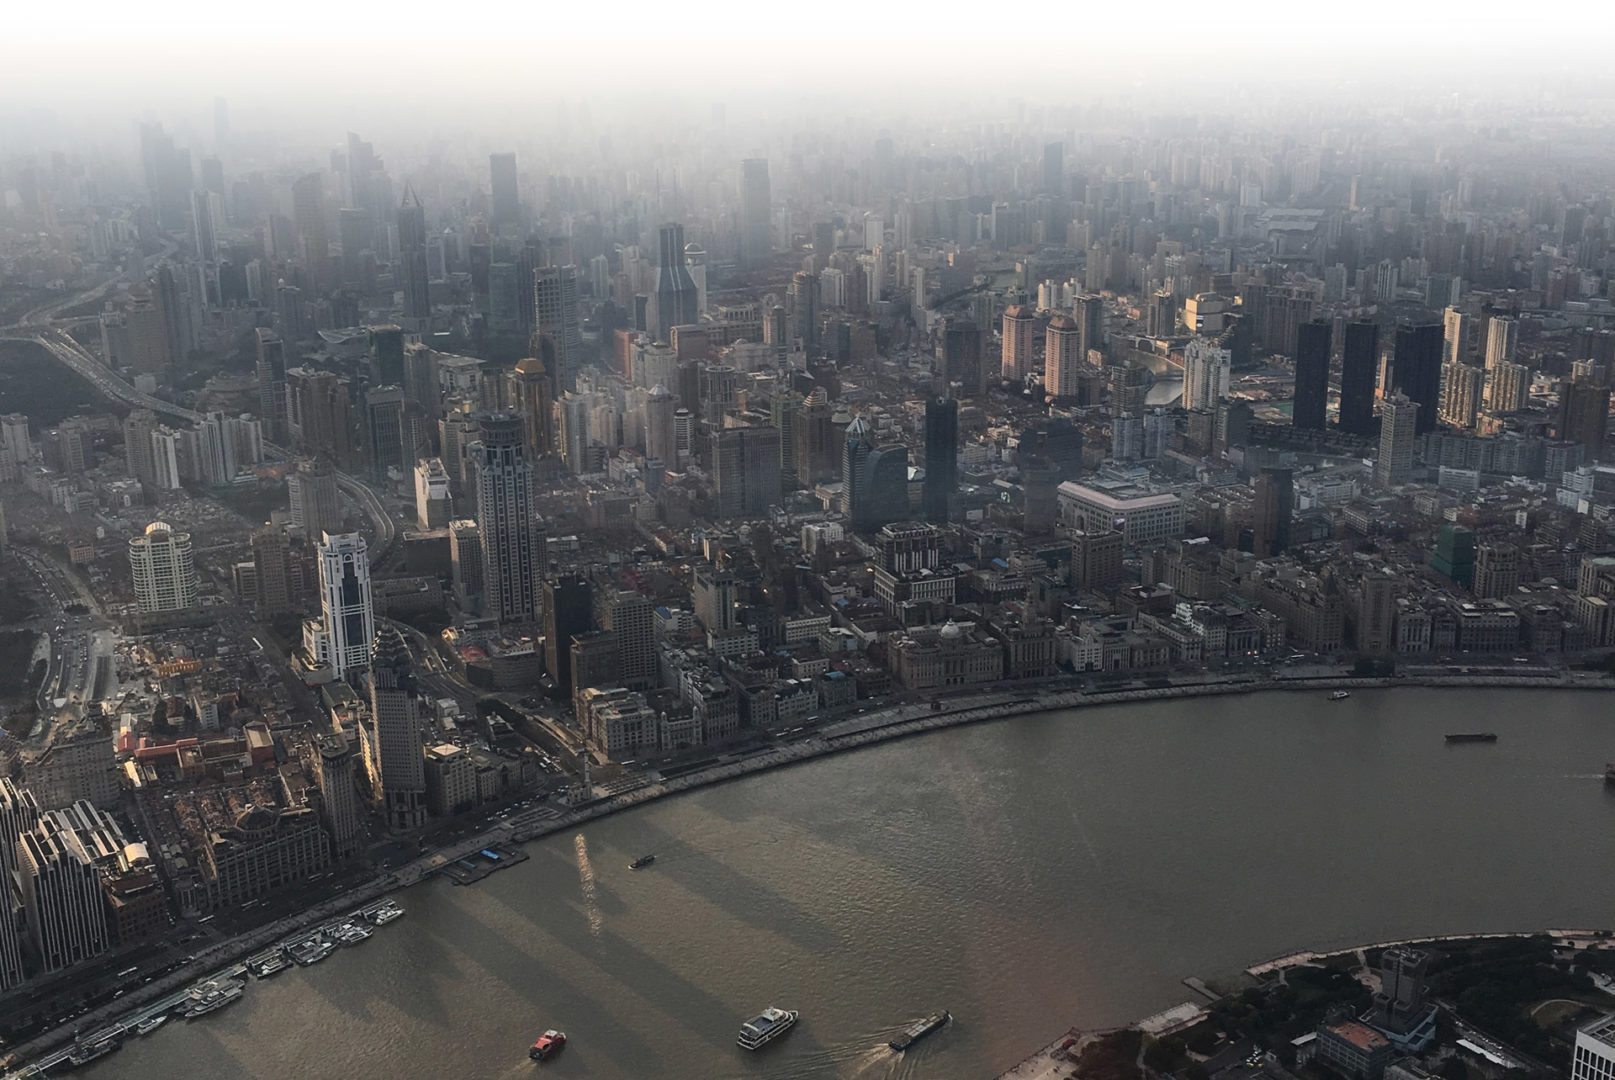 View from Shanghai Tower by Jennifer Chavez '17 during Winter Term trip to study international business and culture.